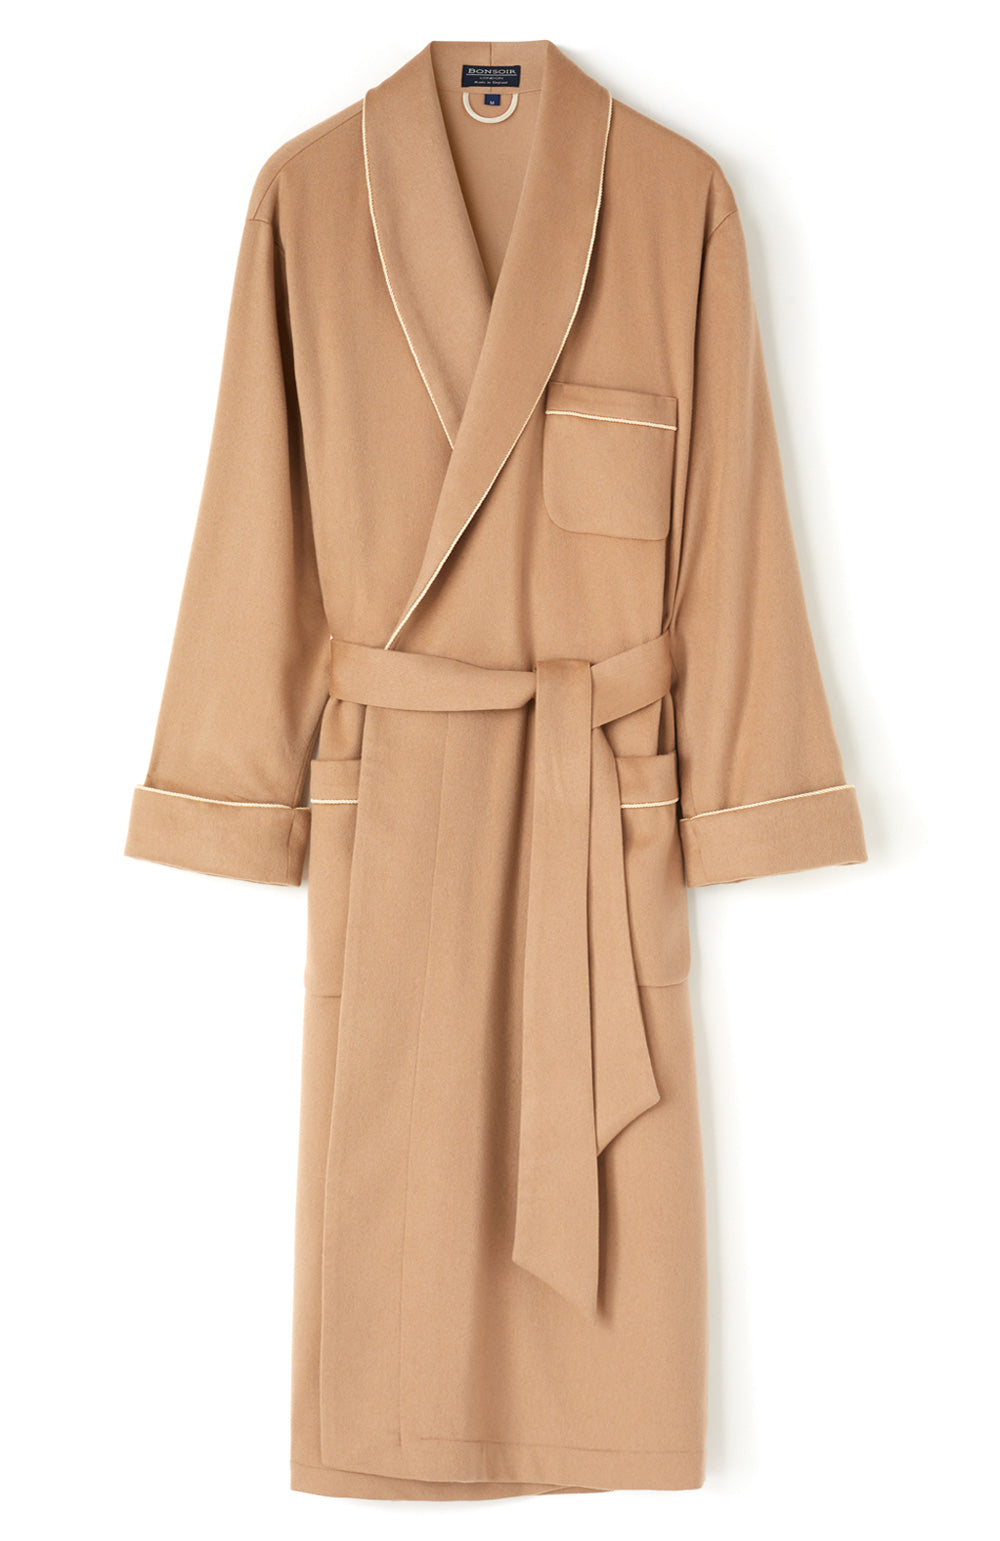 Luxury Camel Cashmere Robe | Bonsoir of London